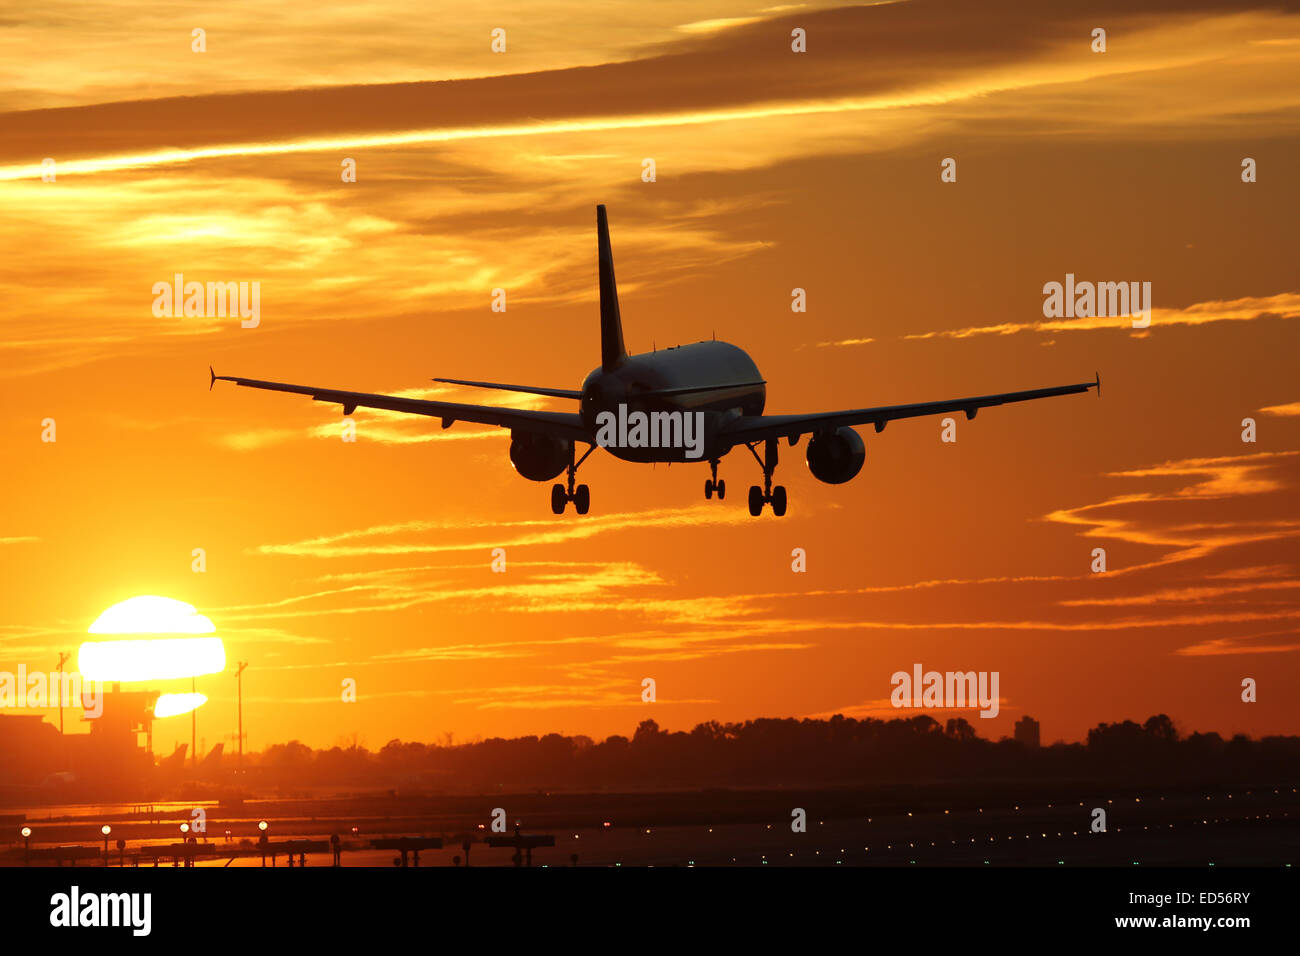 An airplane landing at an airport during sunset on vacation during a journey - Stock Image